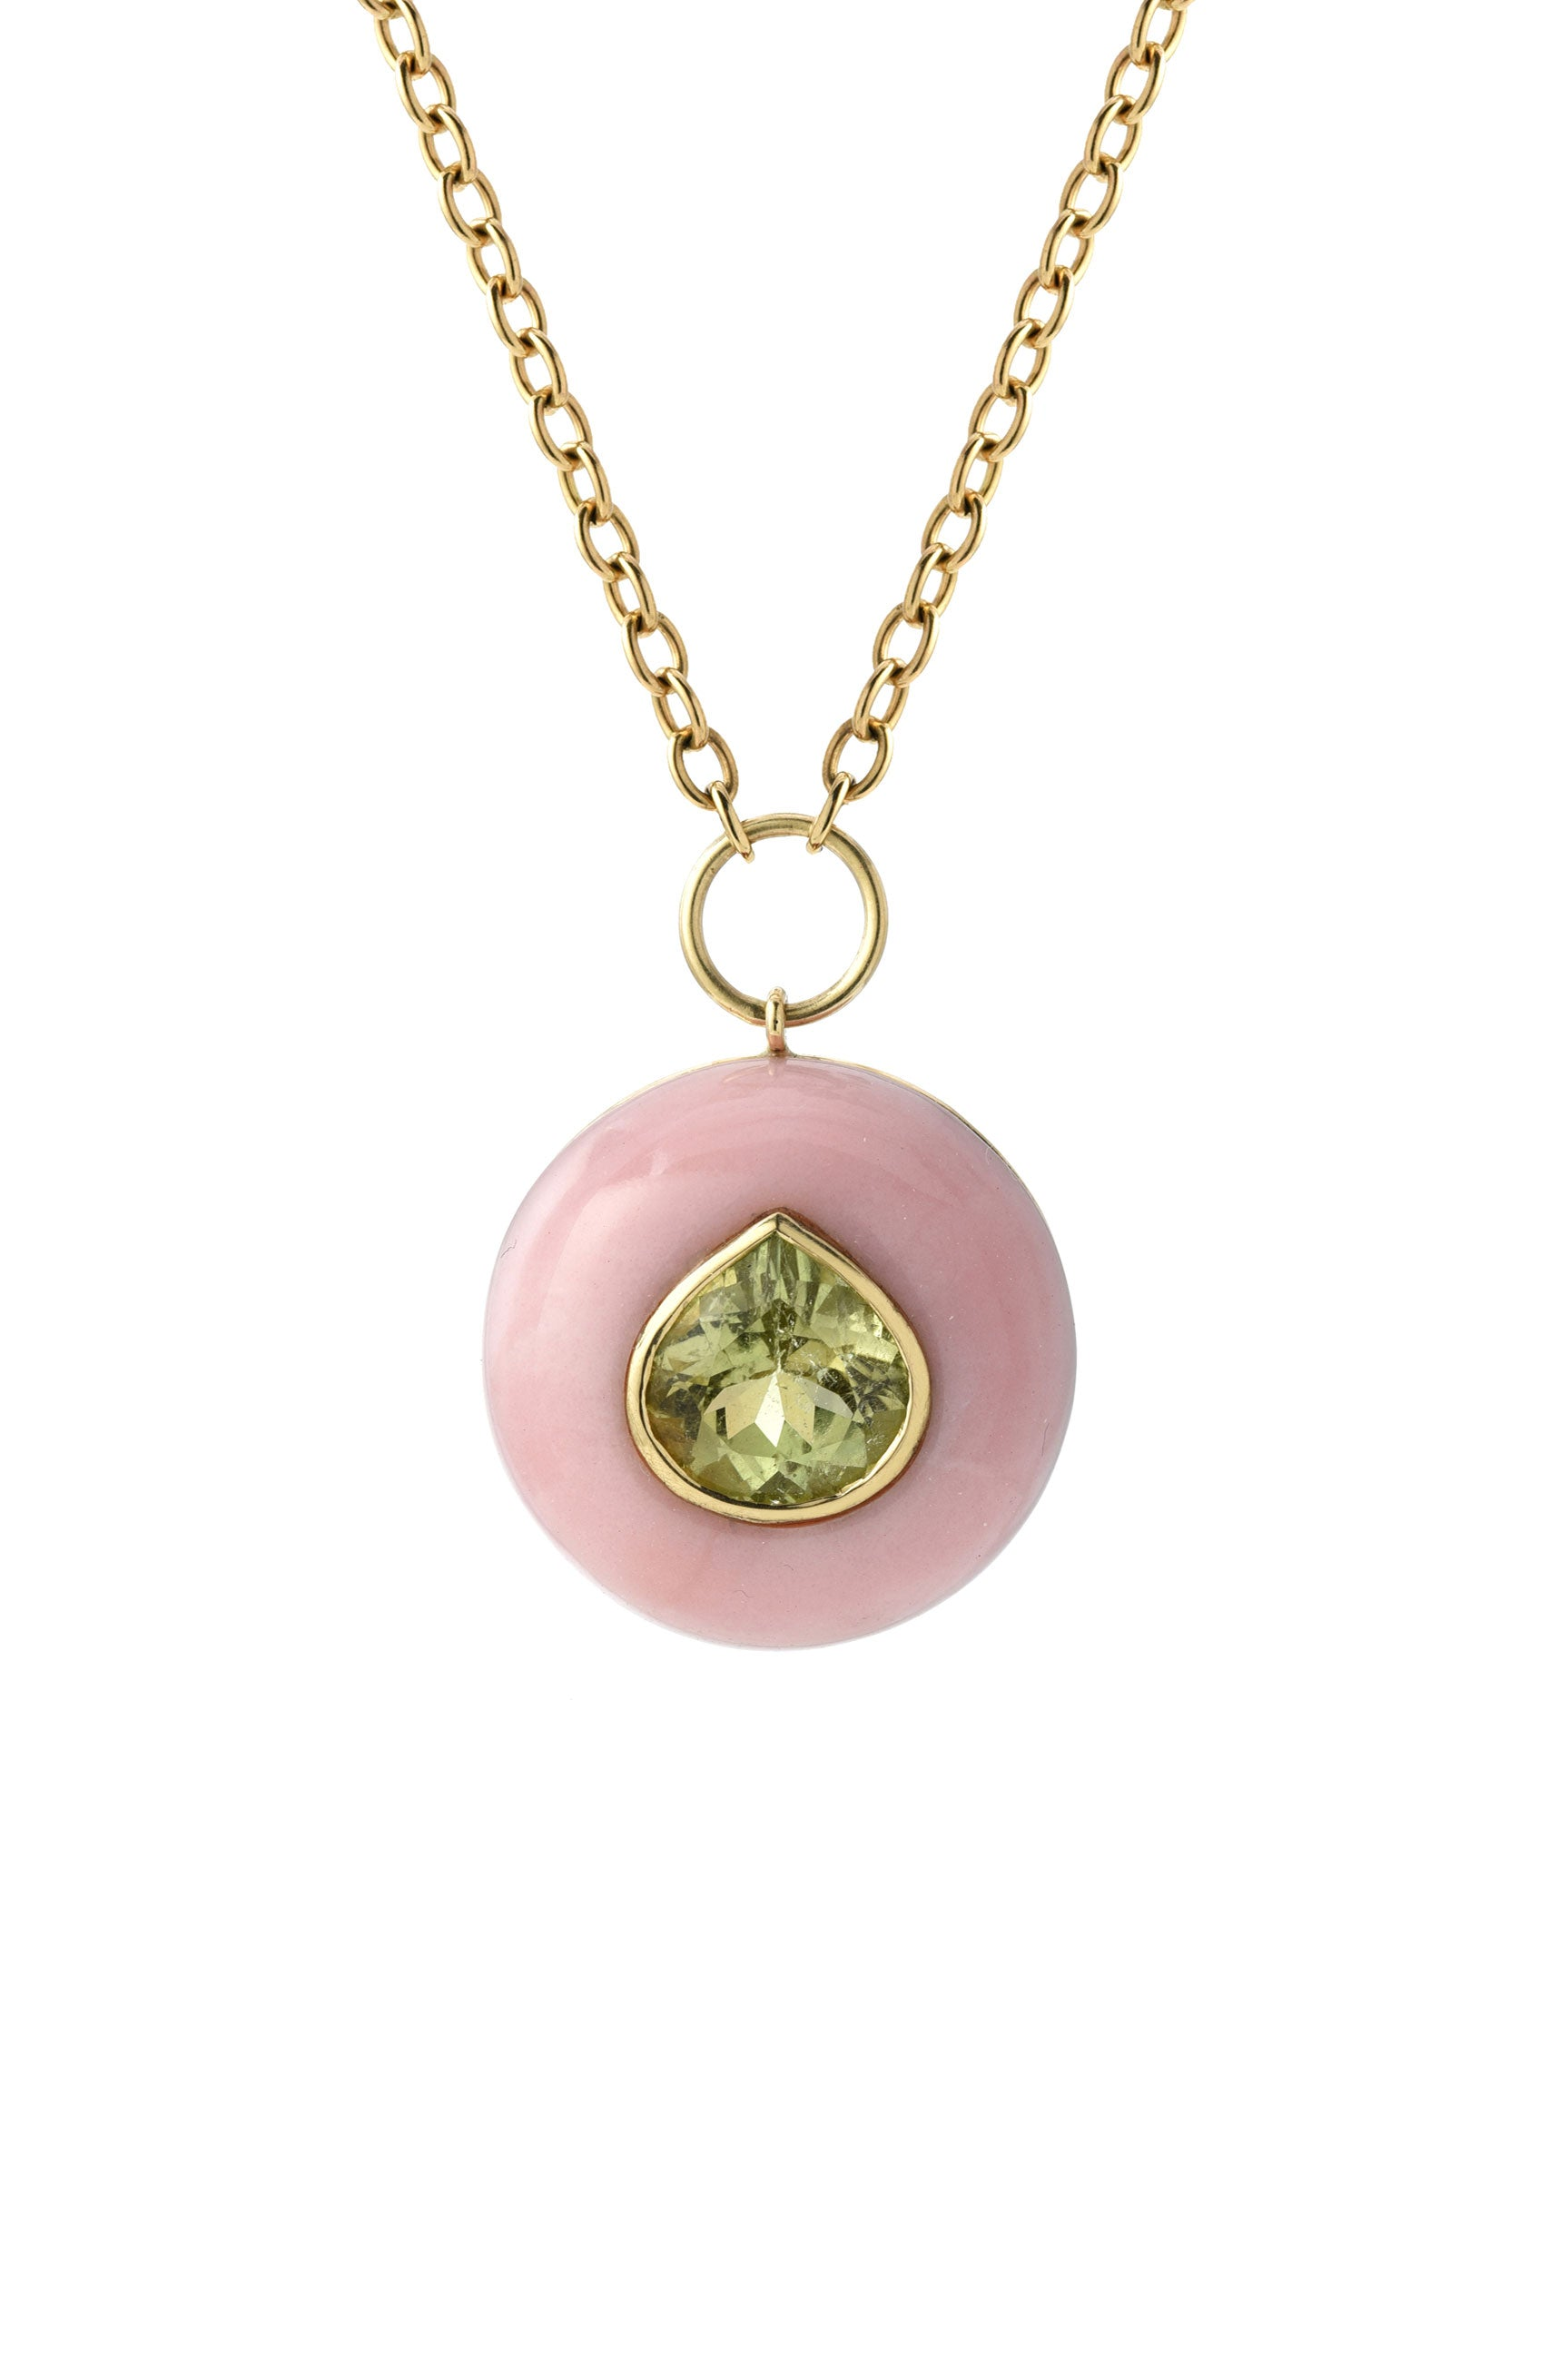 RETROUVAI - Lollipop Pendant Necklace, Gold